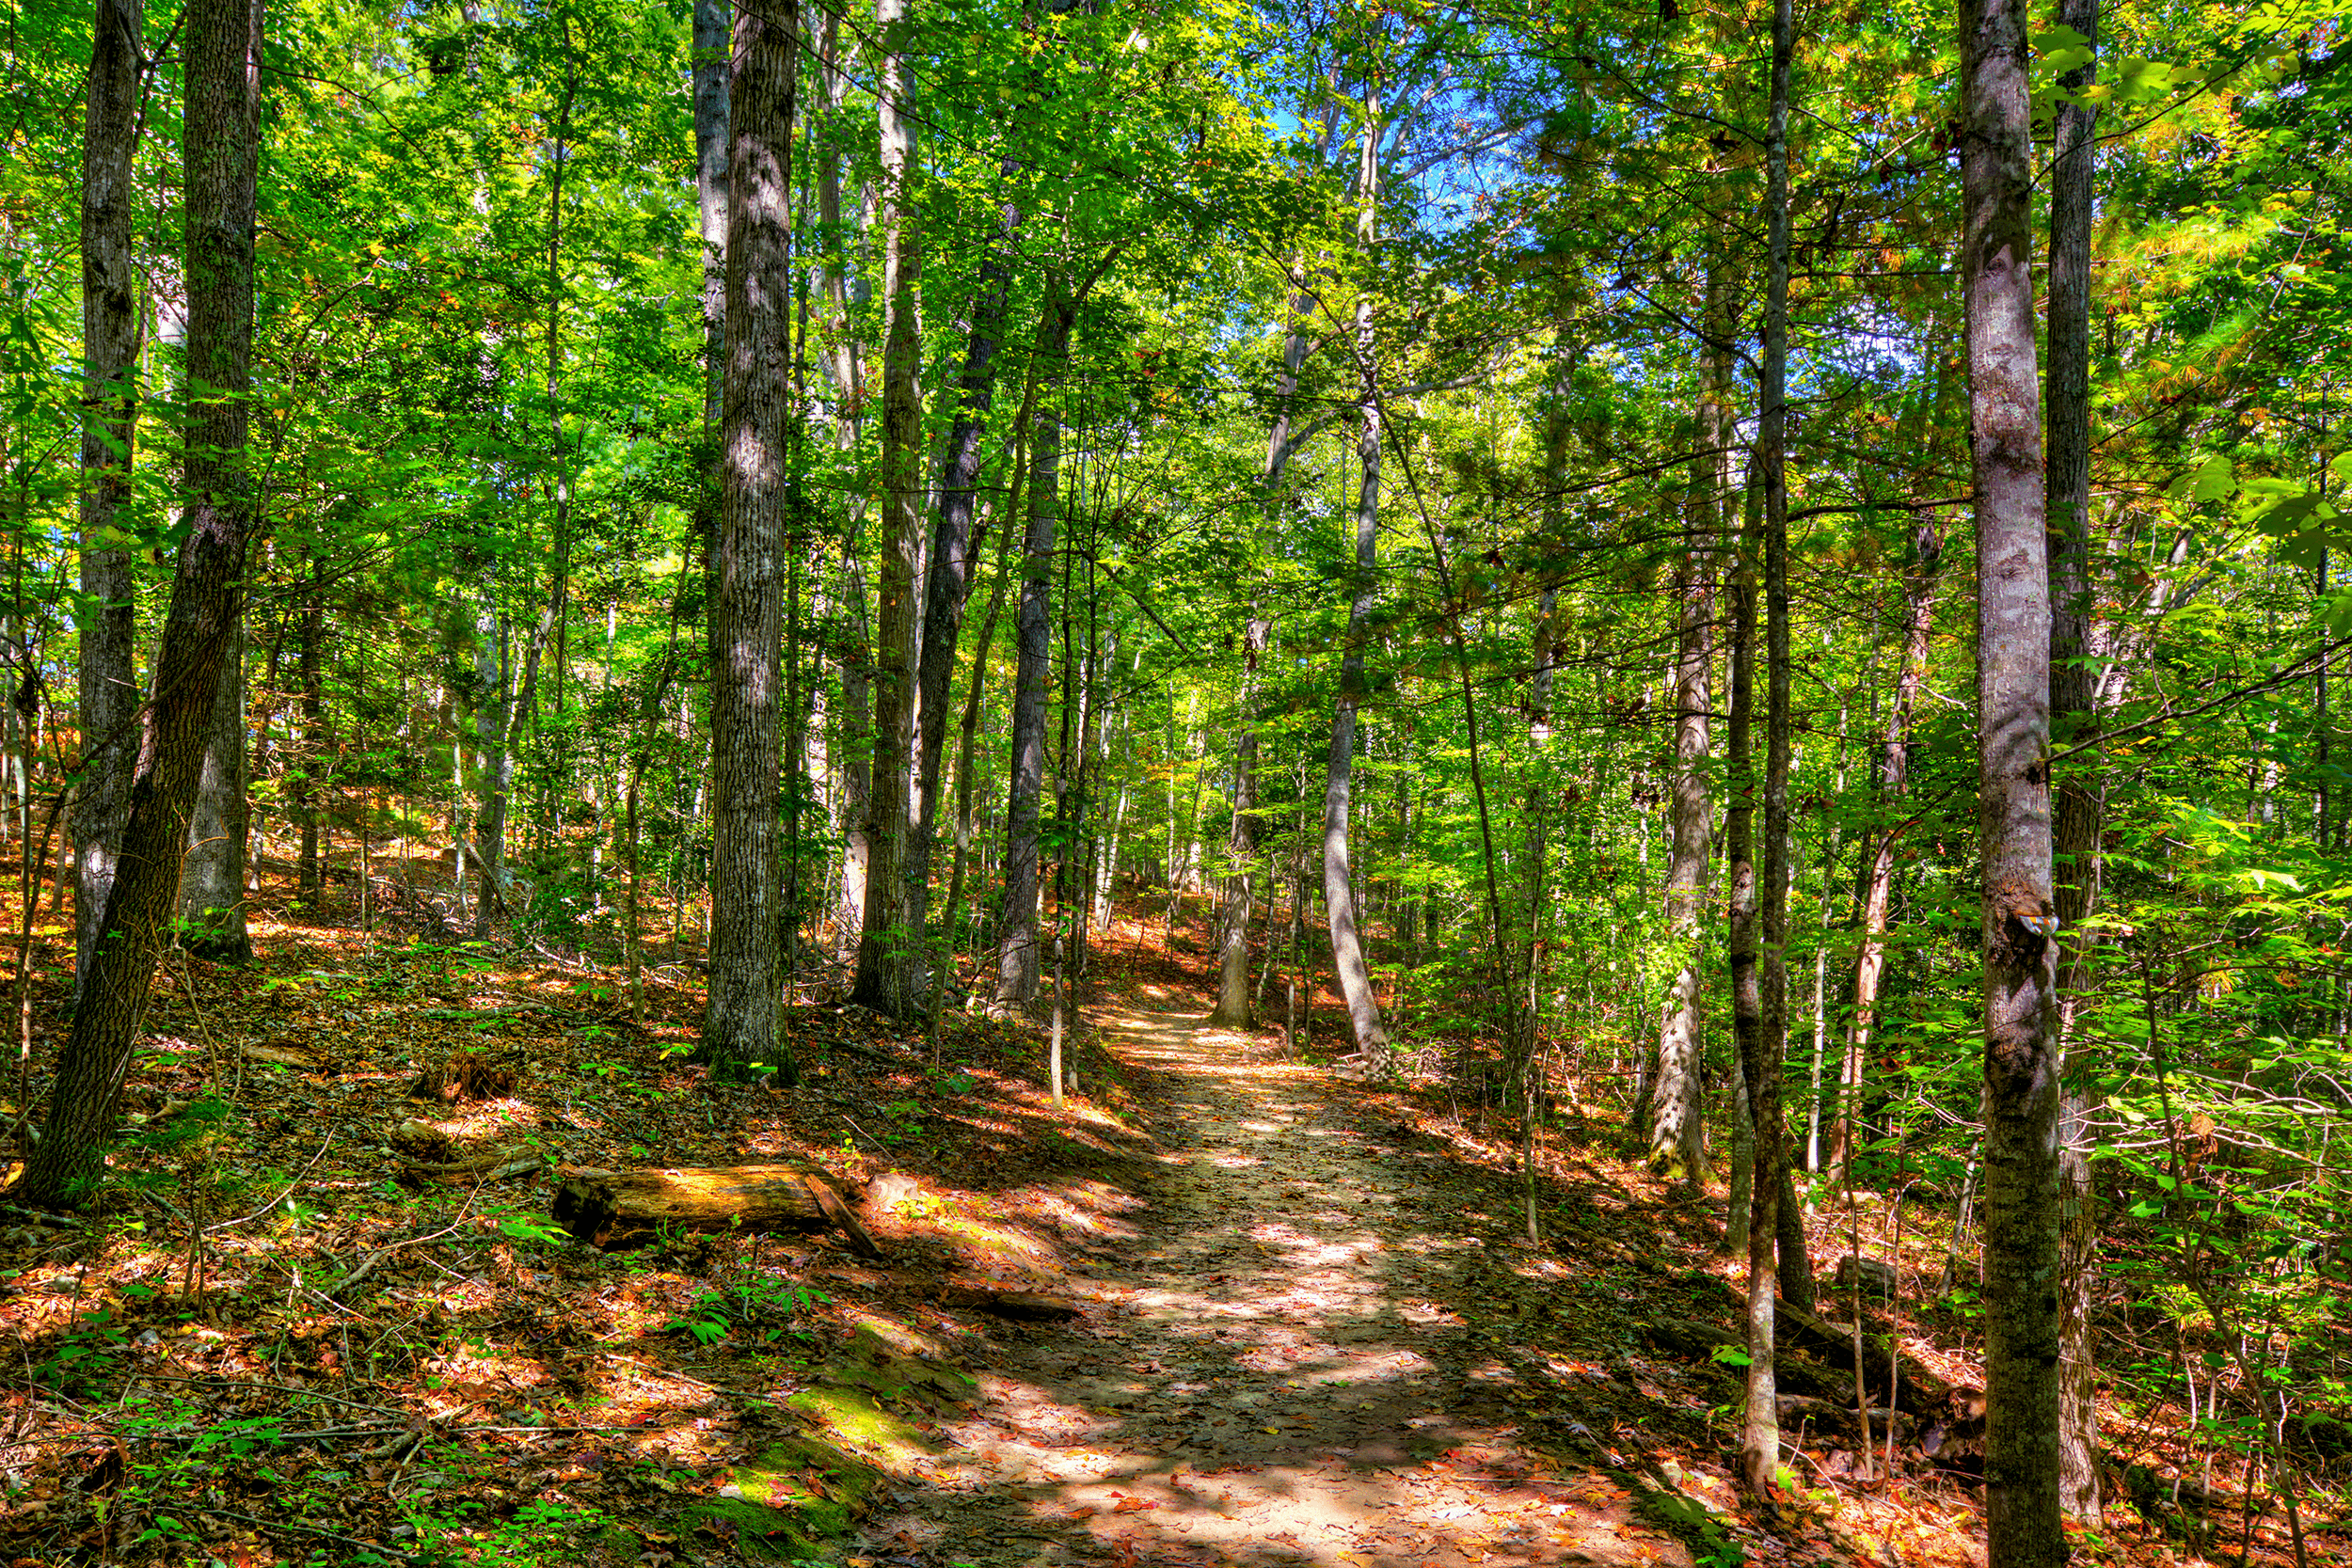 Six of the 11 trails are designated only for hikers. The paths are generally well maintained and vary from easy to difficult.